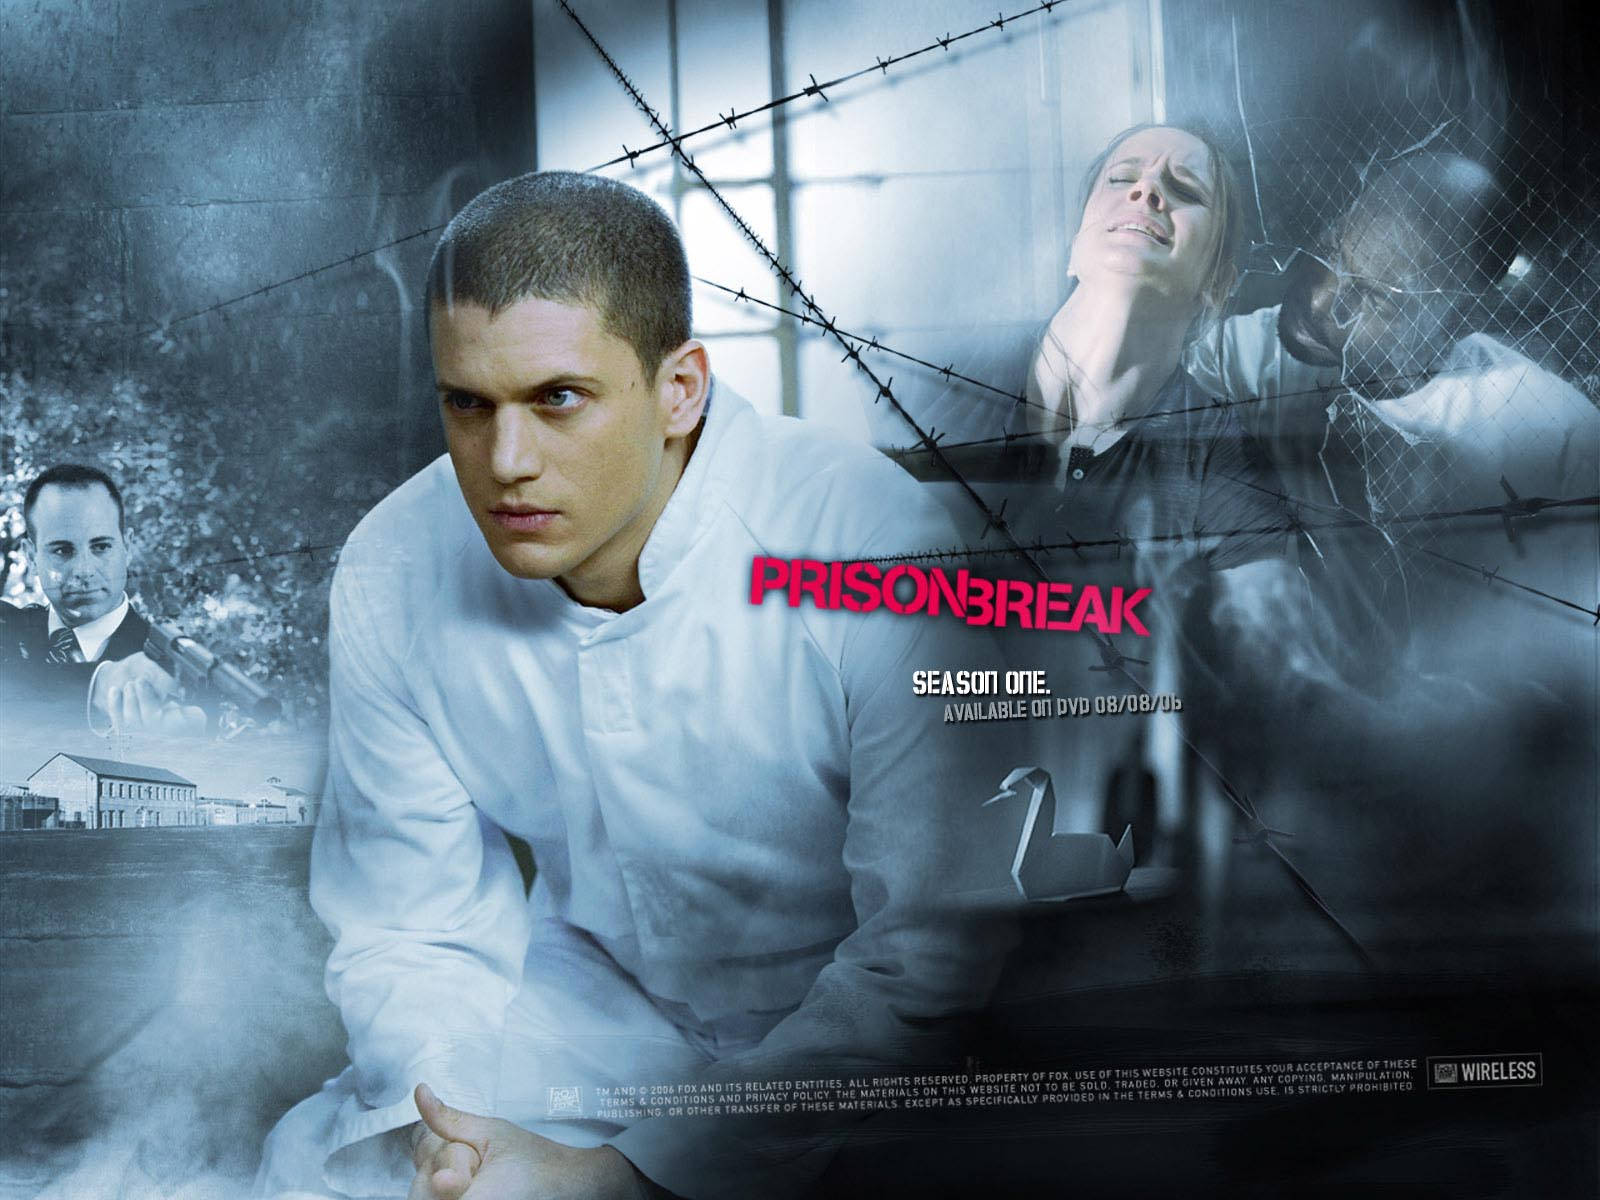 Prison break wallpapers prison break wallpaper Amazing Wallpapers 1600x1200